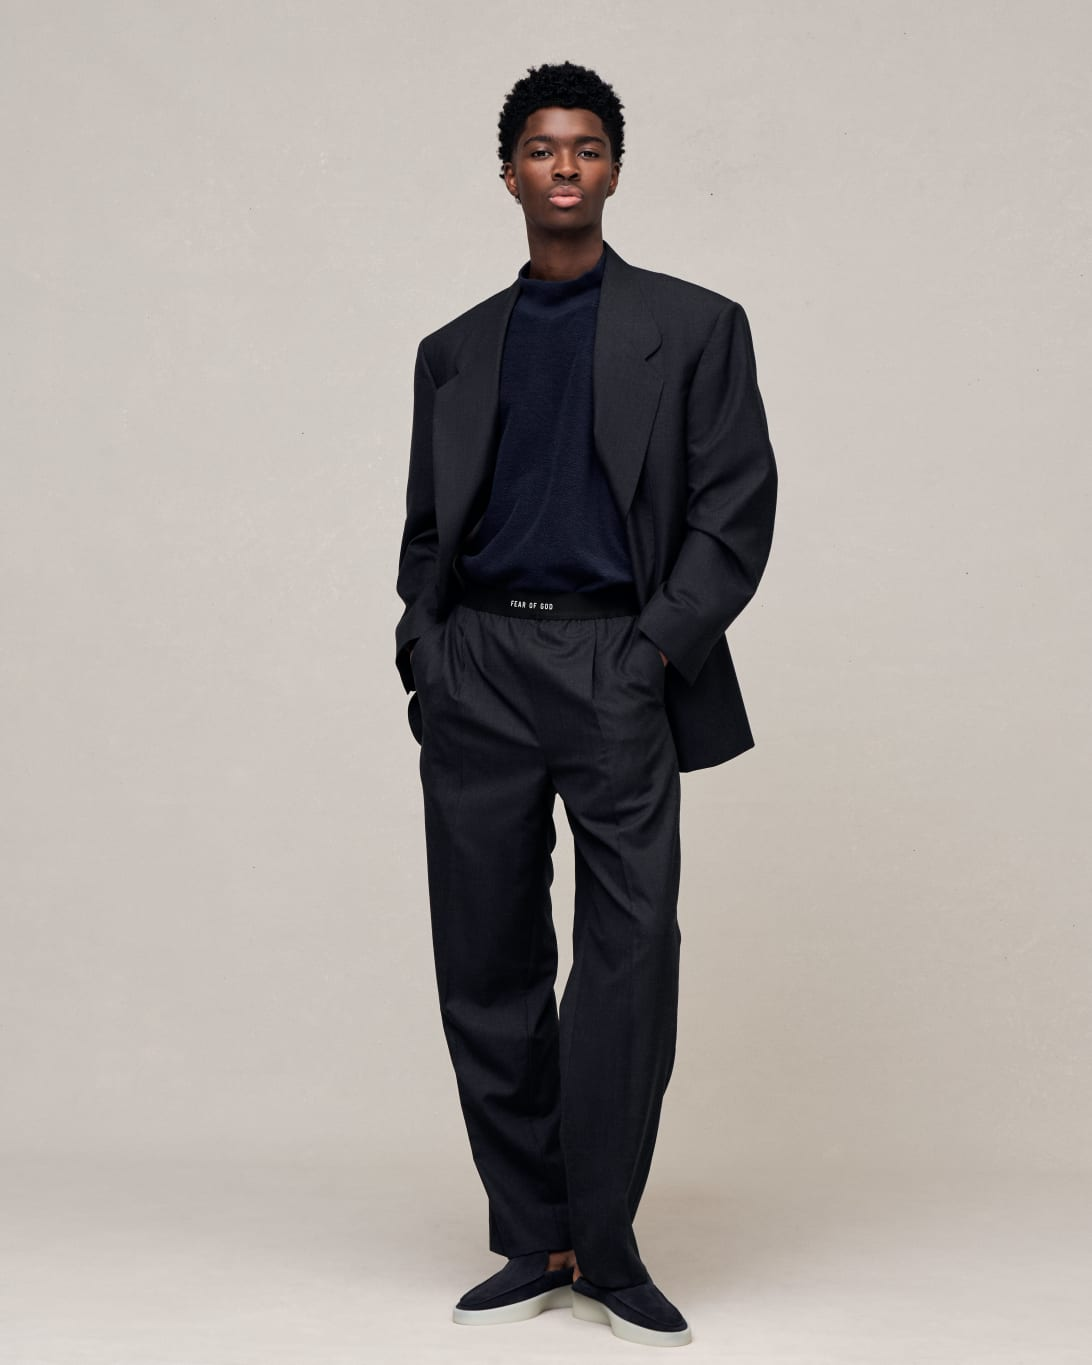 Seventh Collection | Fall/Winter Lookbook Look 22